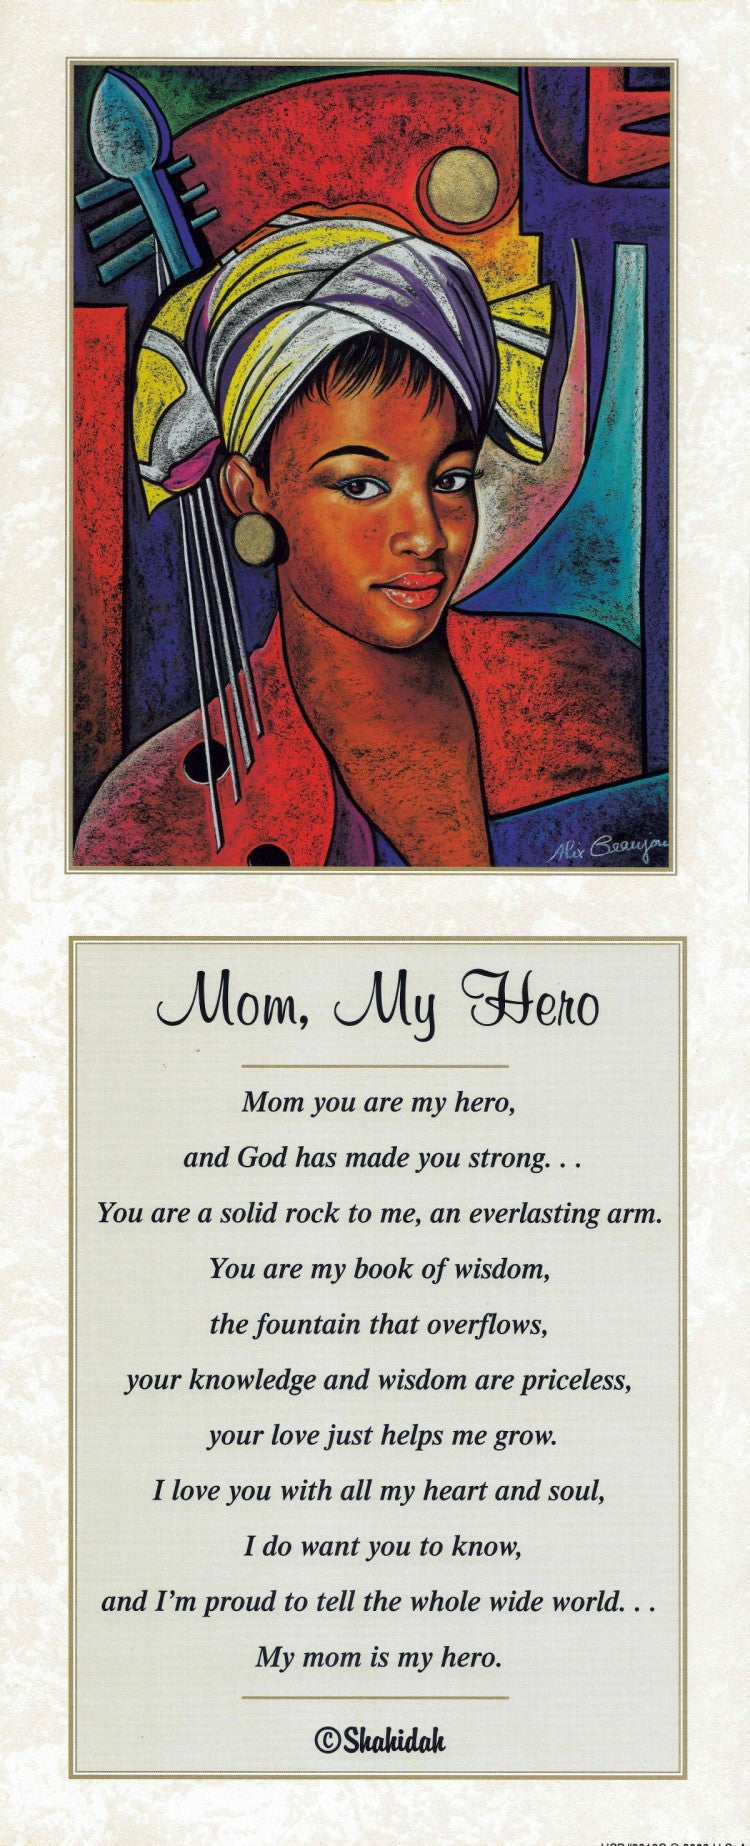 Mom, My Hero by Alix Beajour and Shahidah